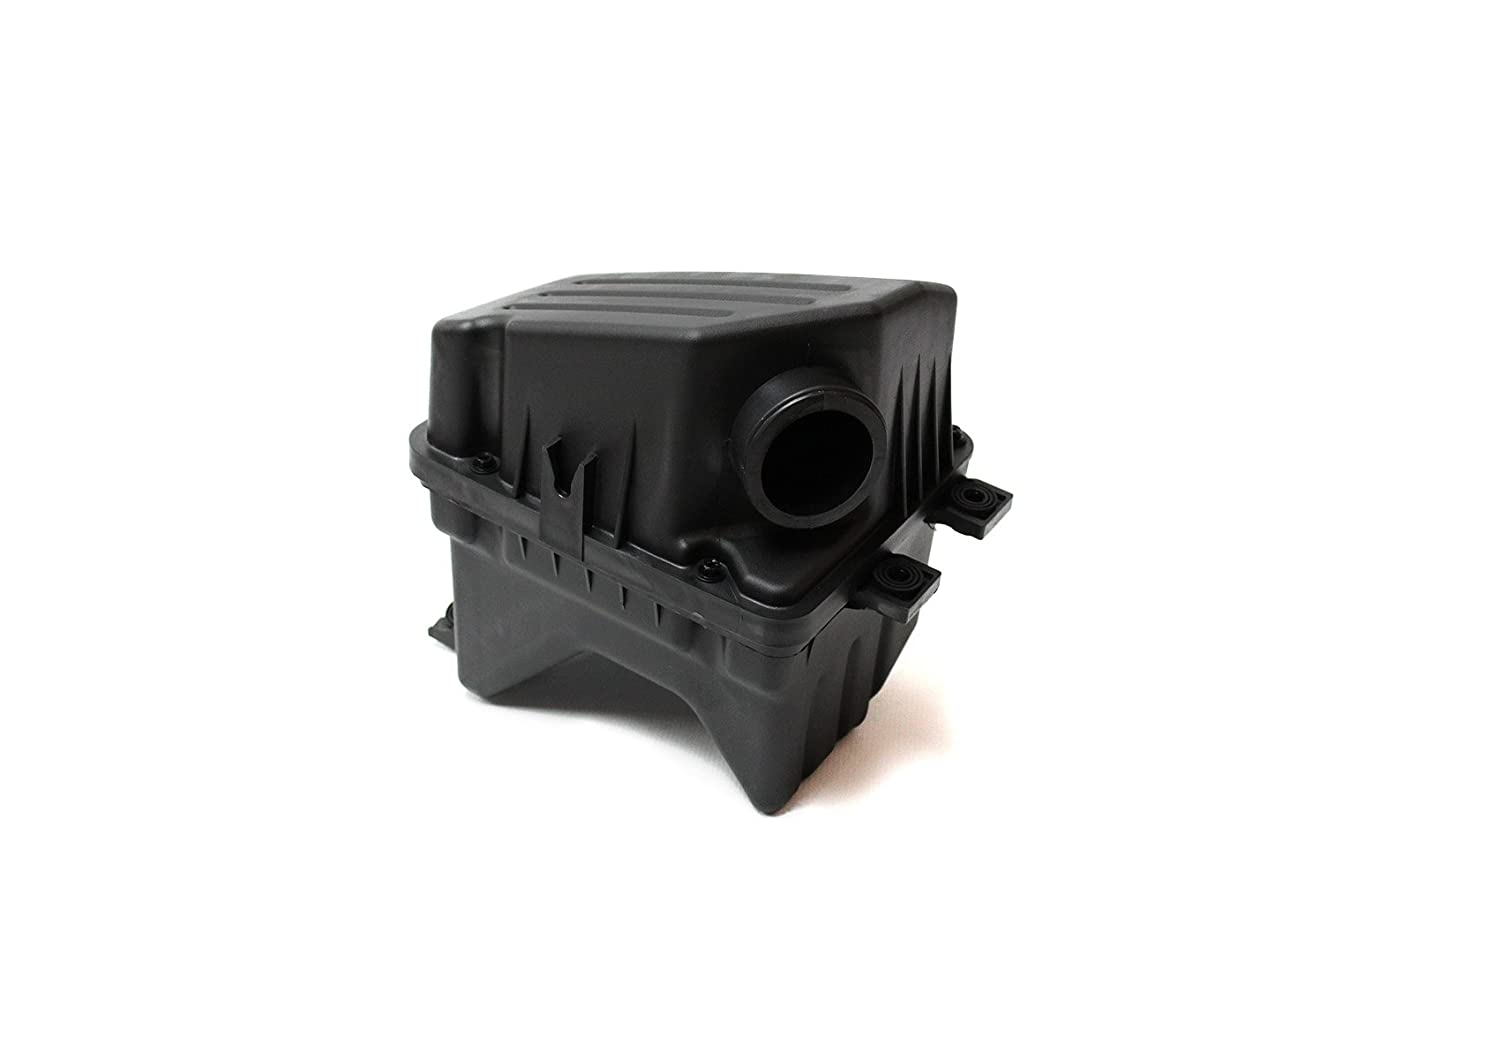 Amazon.com: General Motors Air Cleaner Filter Box for Aveo , Aveo5 Part:  96814238: Automotive